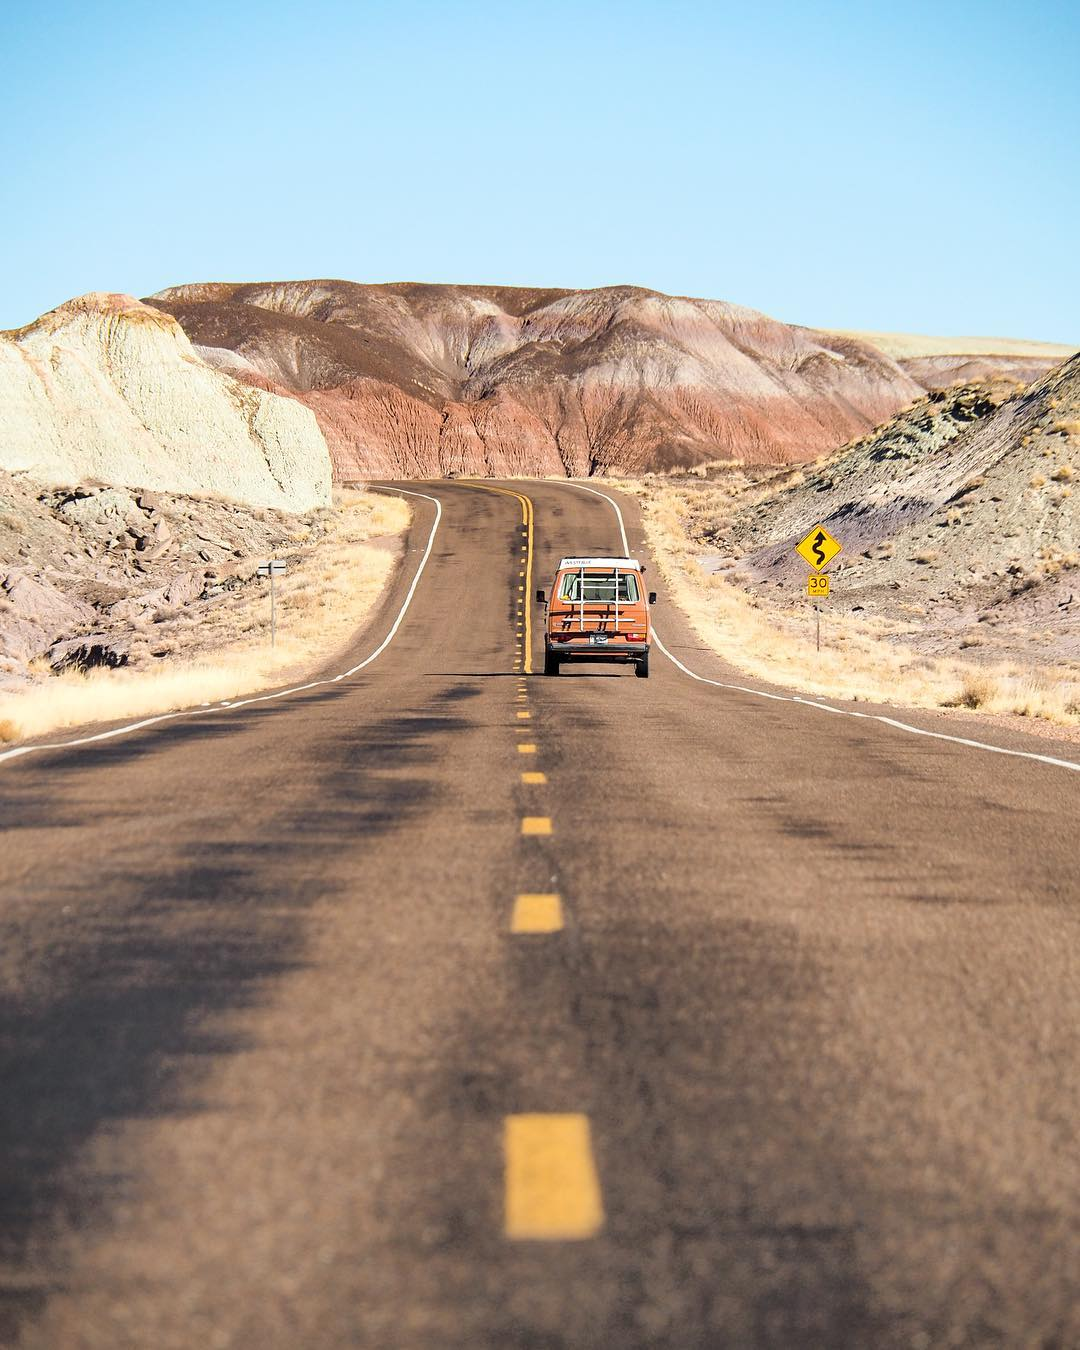 """""""The road is alive and makes us feel alive,"""" says Joana."""